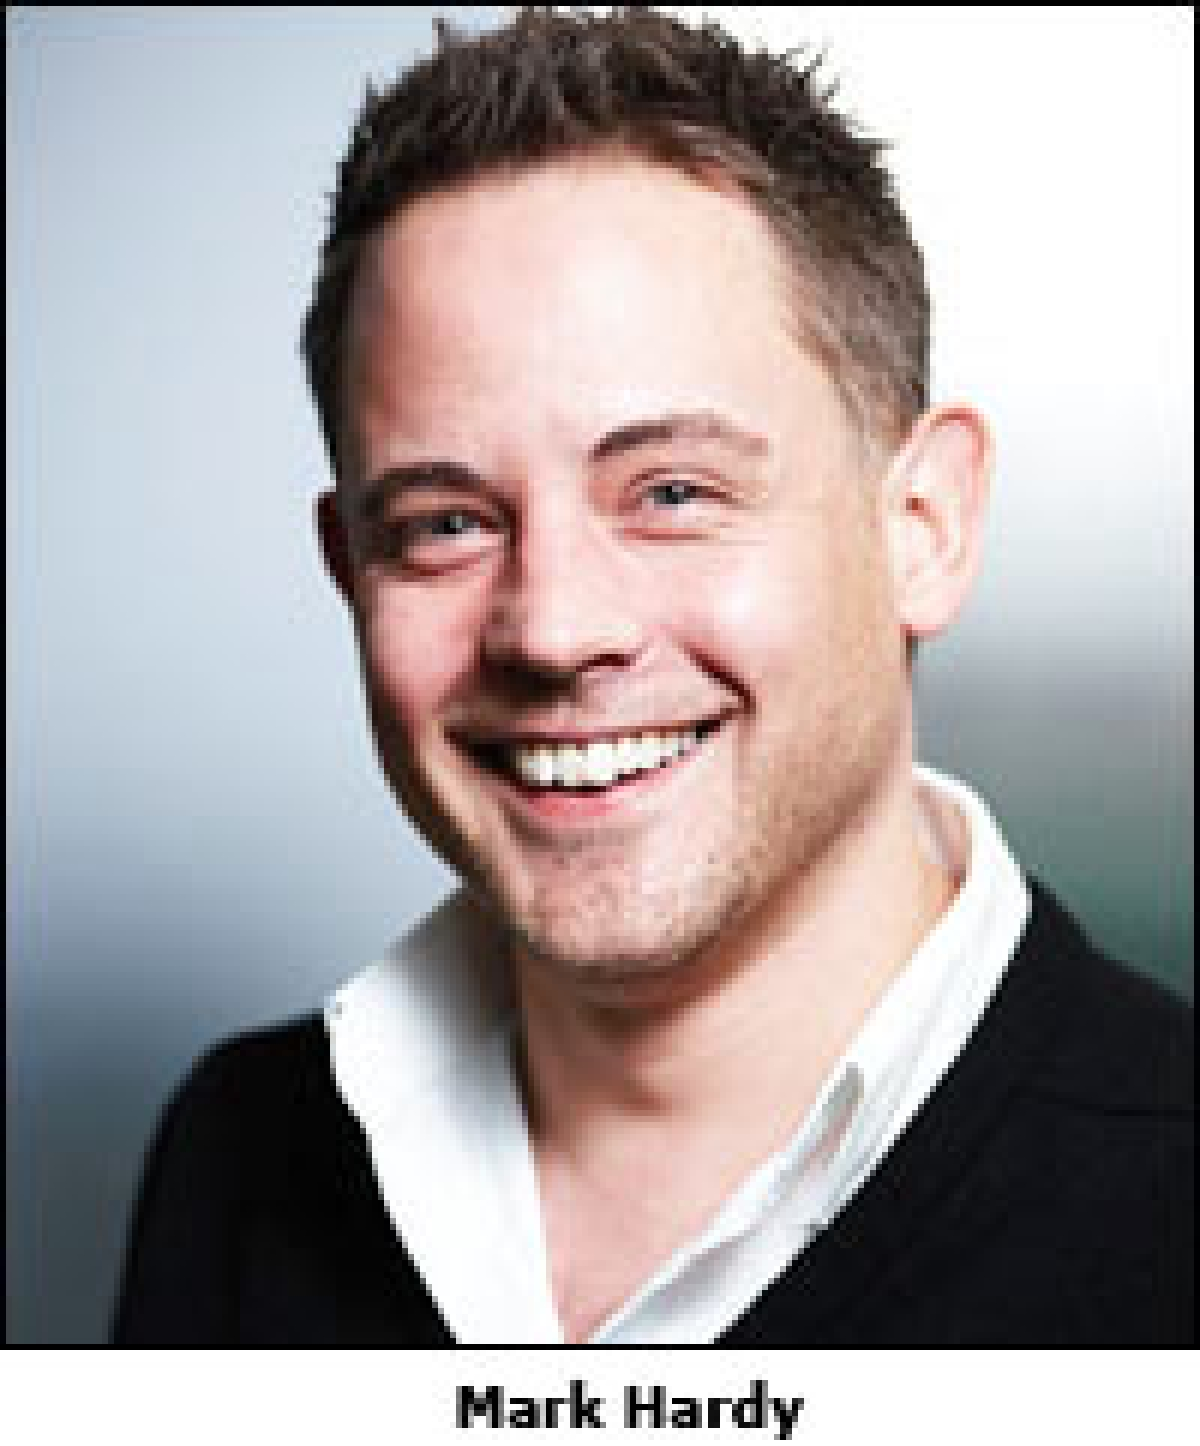 Viber appoints Mark Hardy as CMO